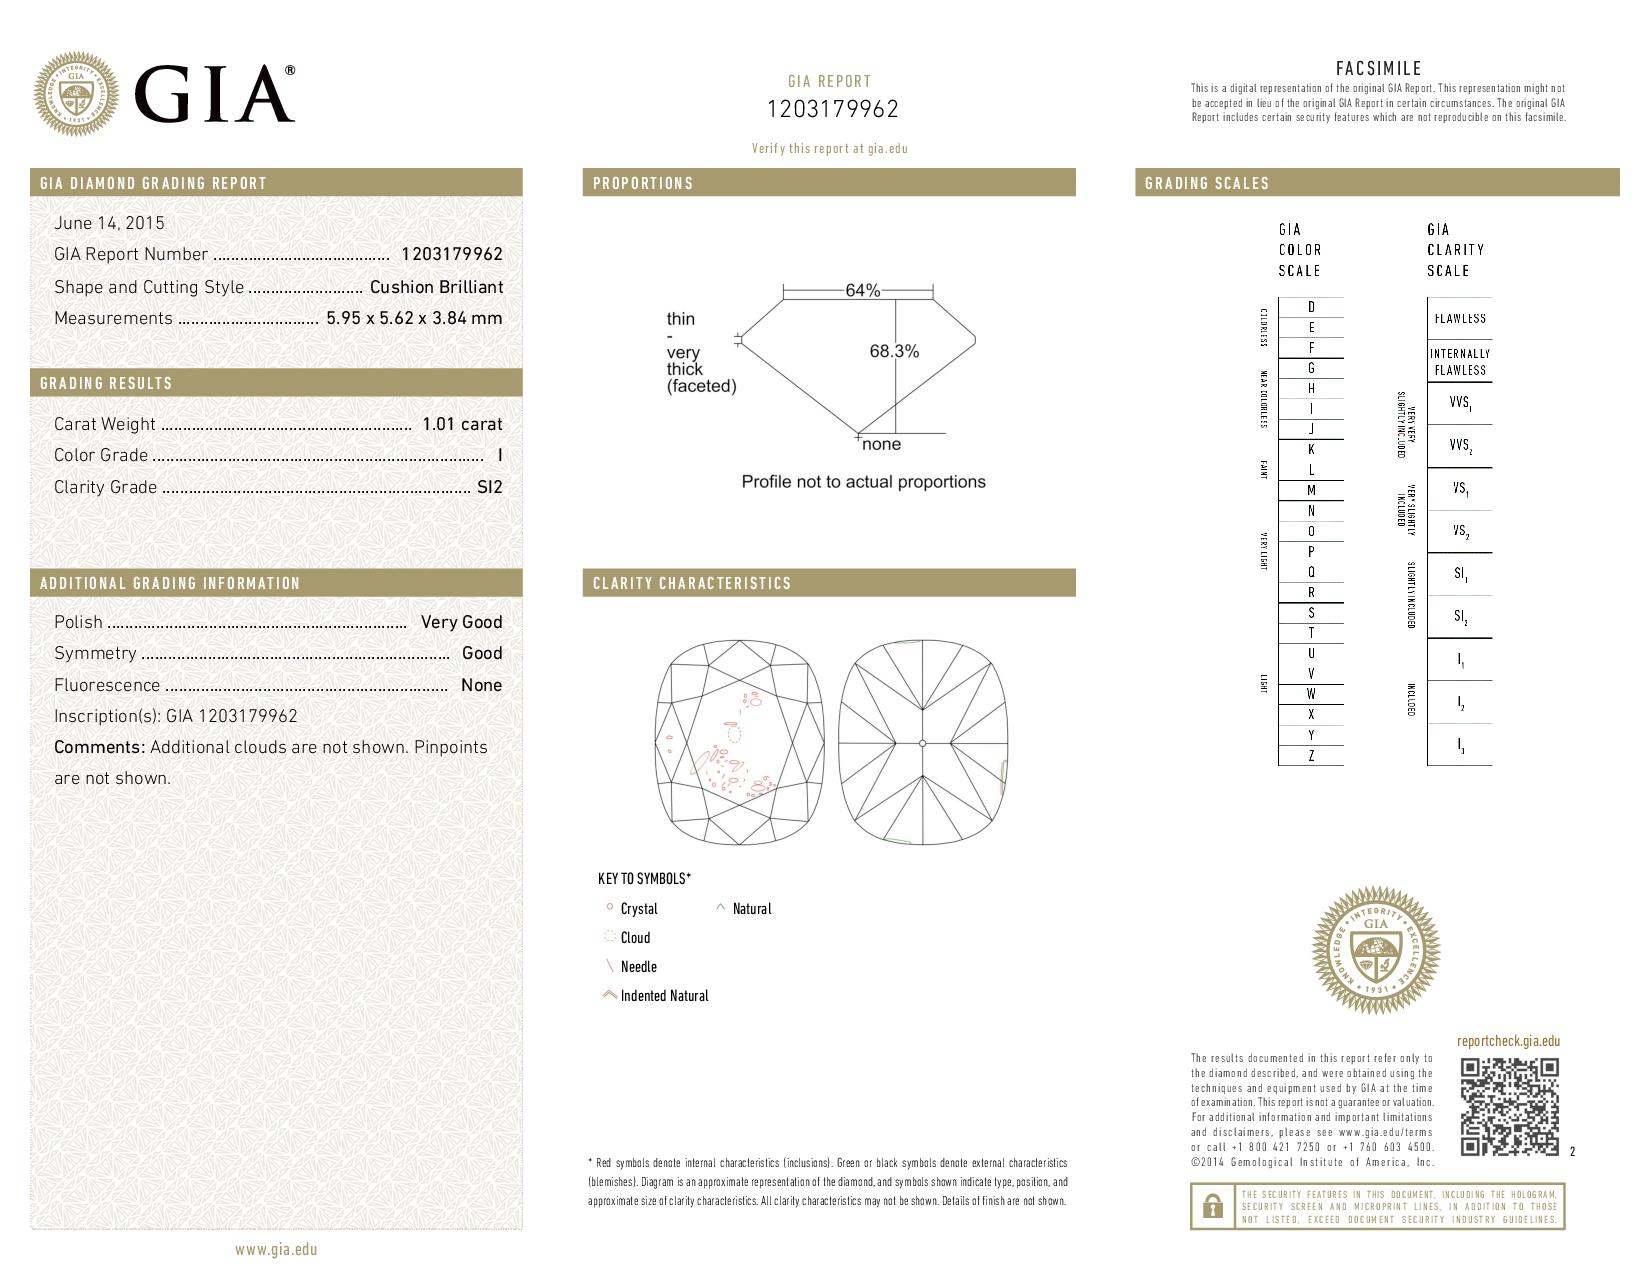 This is a 1.01 carat cushion shape, I color, SI2 clarity natural diamond accompanied by a GIA grading report.